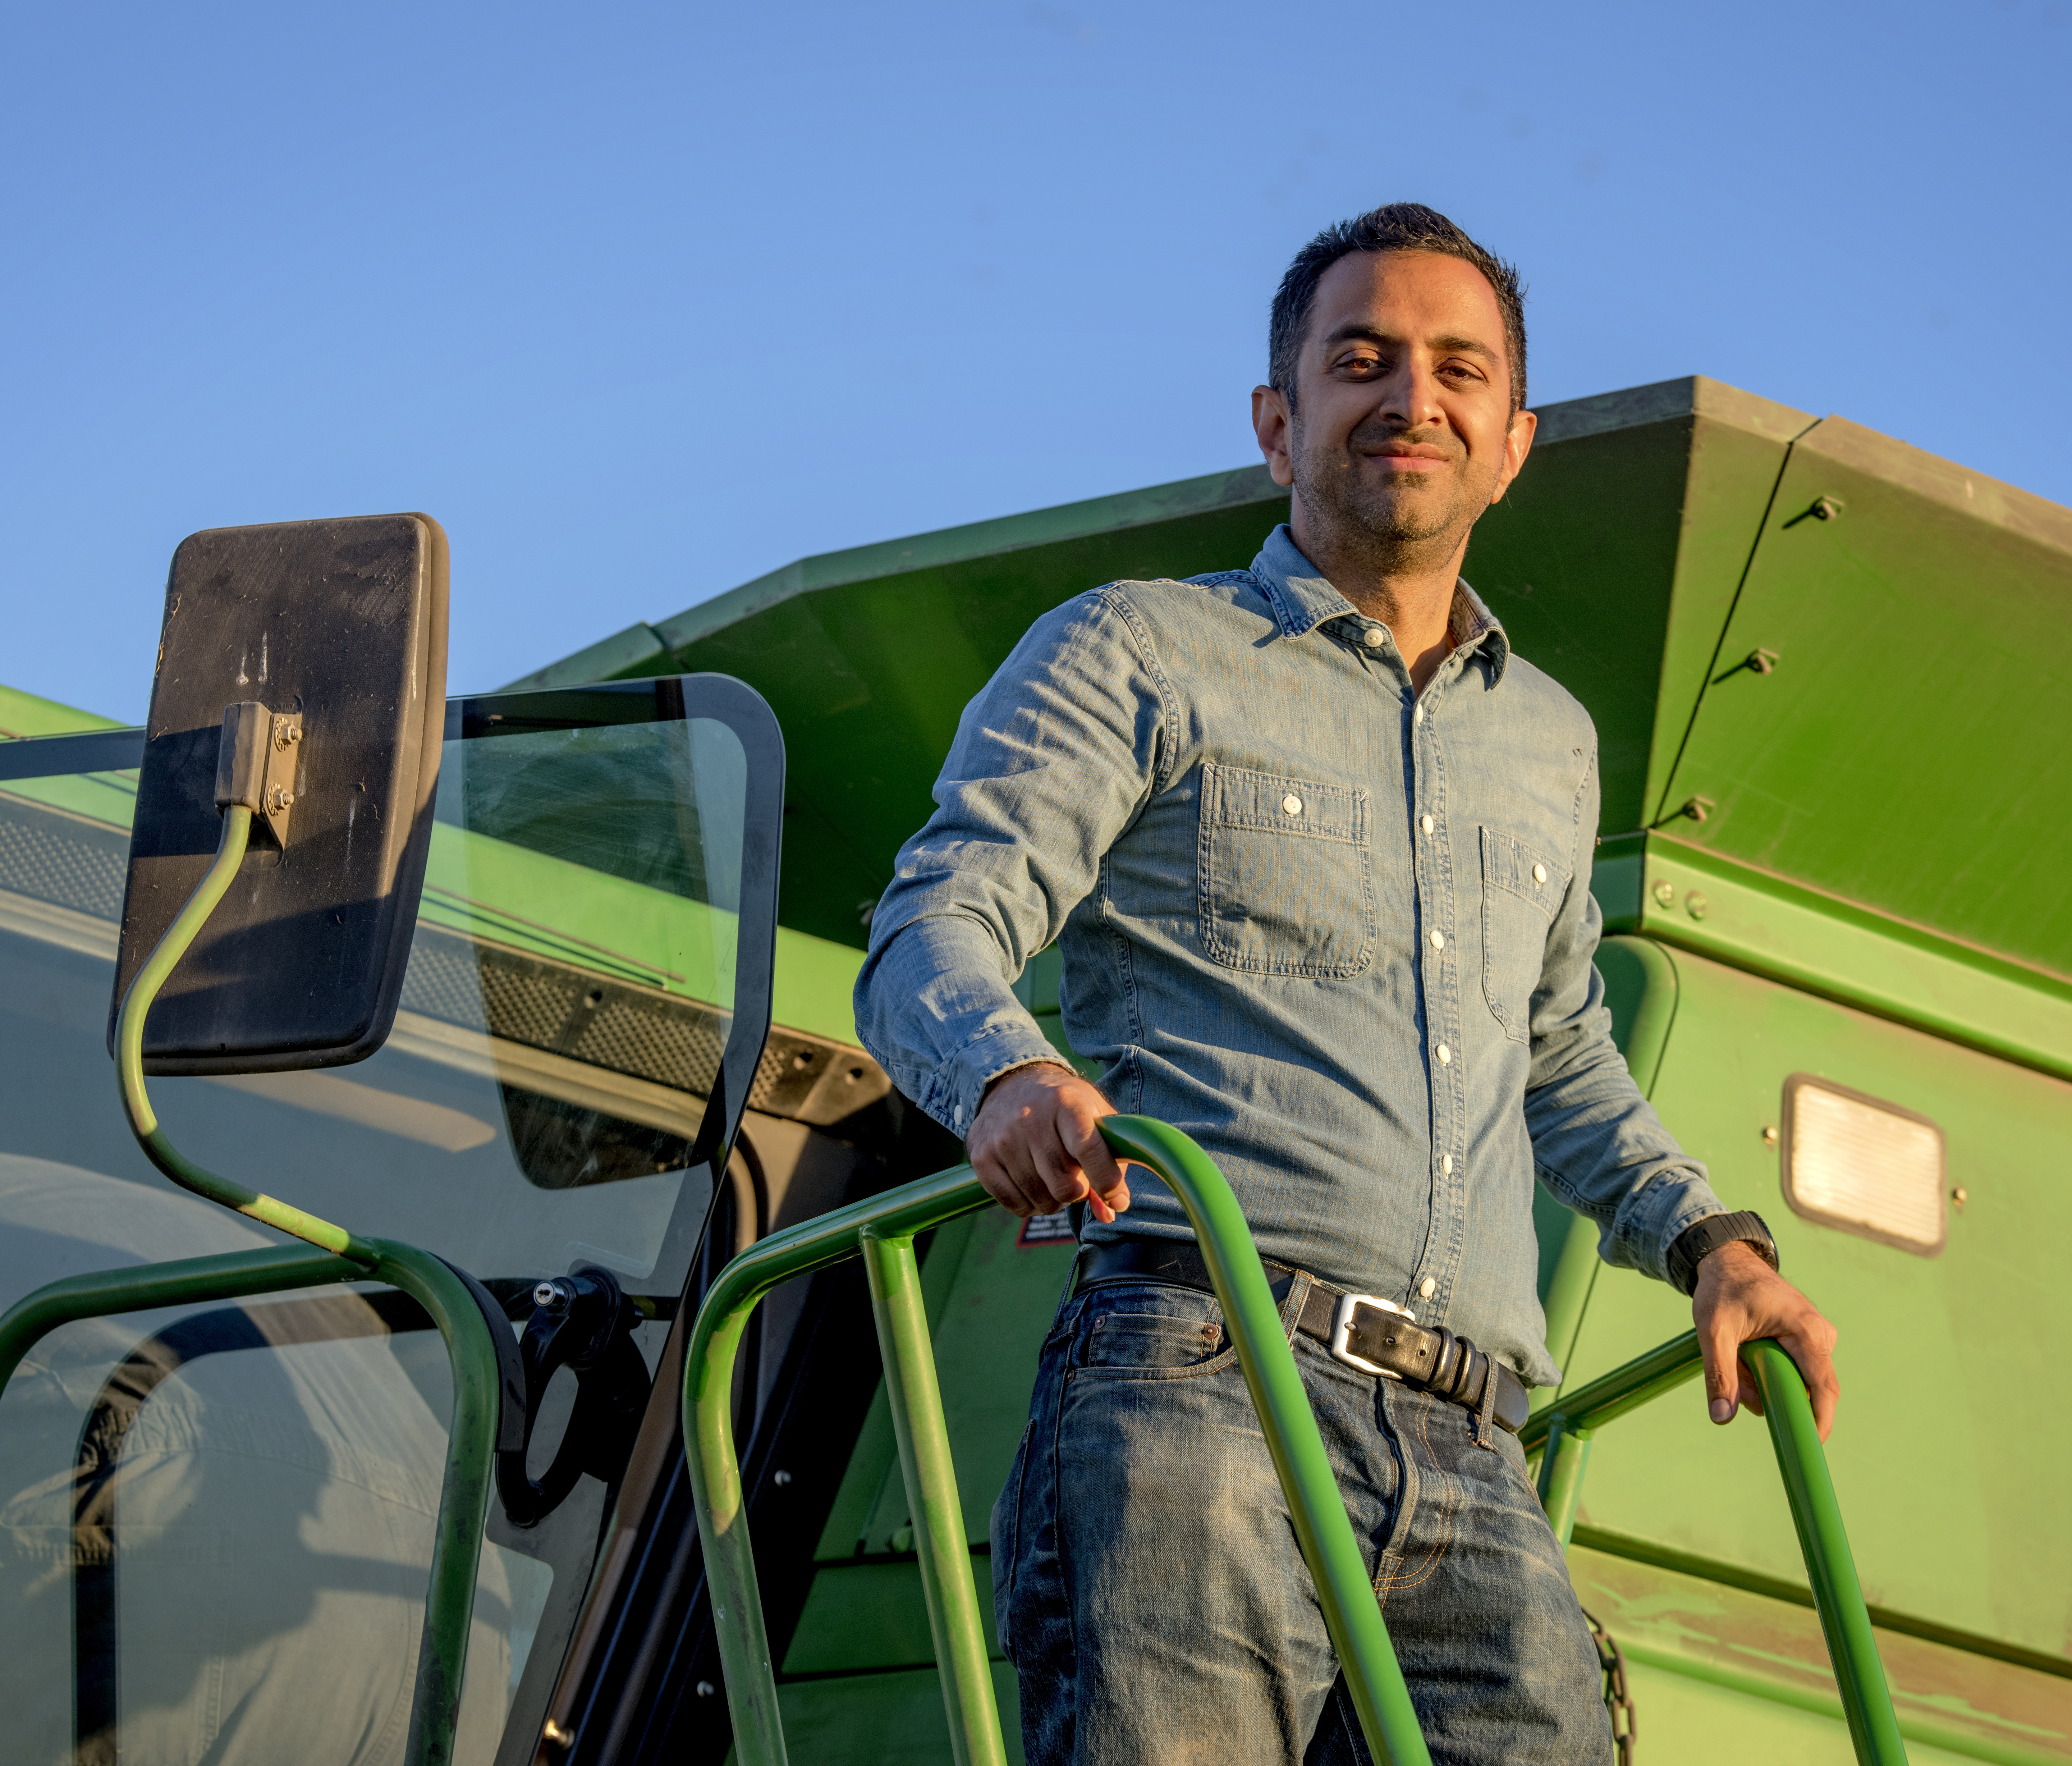 Farmer Imran Khan, wearing denim shirt & blue jeans, stands outside green combine